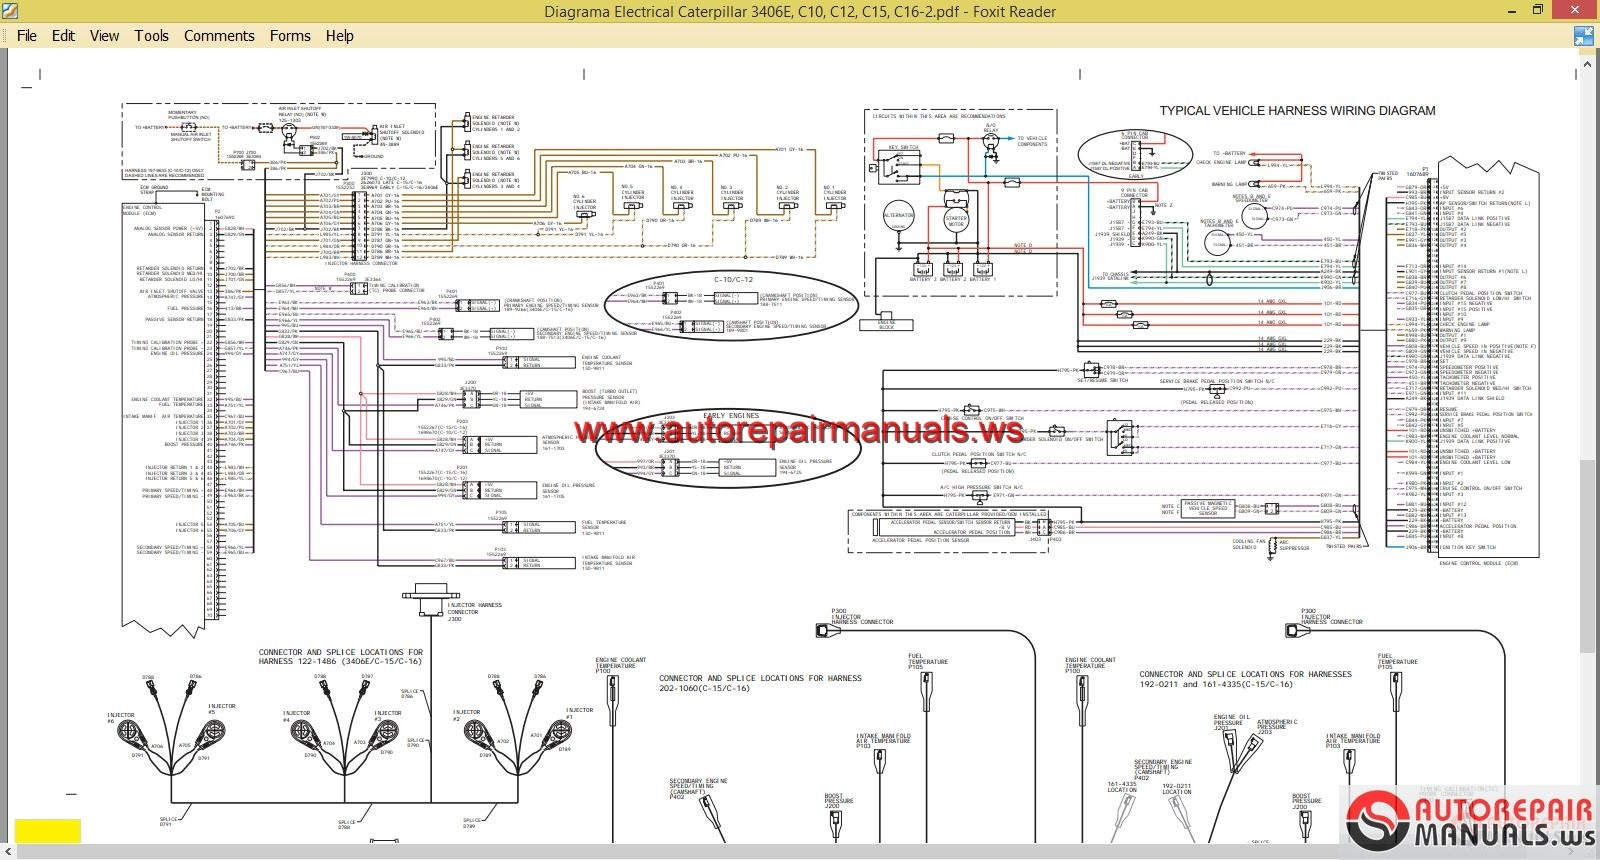 2005 Peterbilt 379 Wiring Diagram